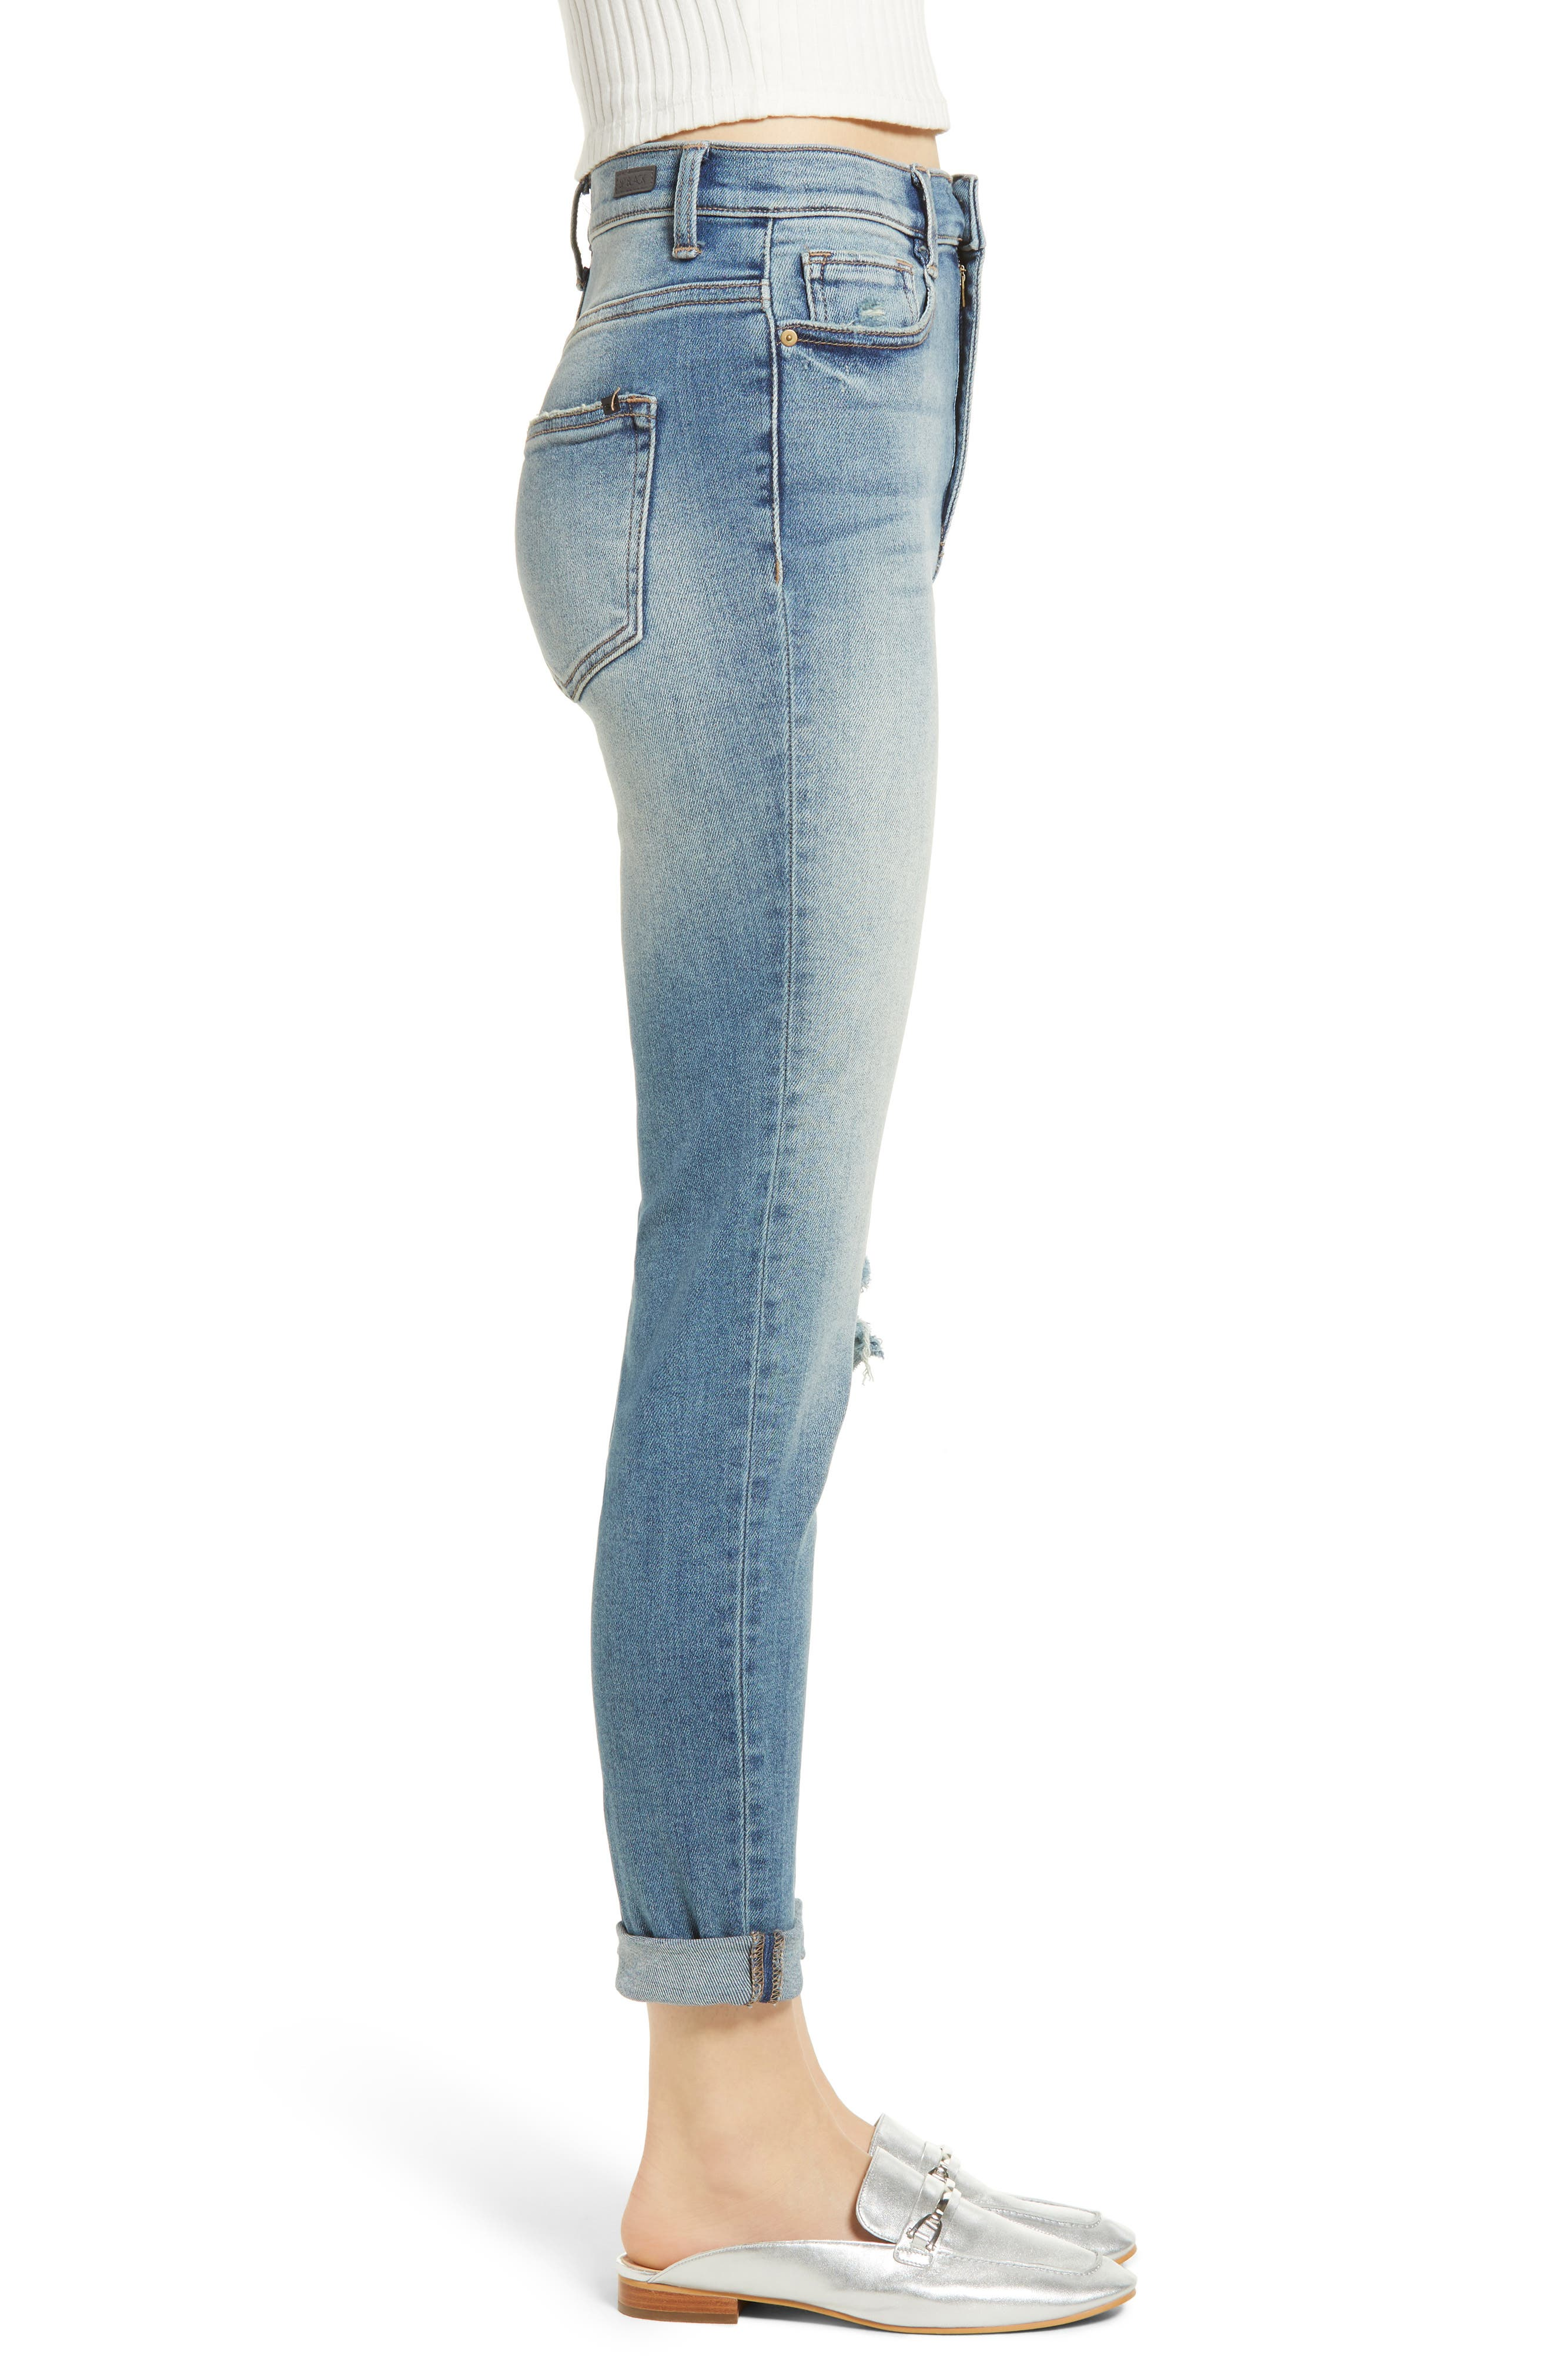 Ripped High Waist Boyfriend Jeans,                             Alternate thumbnail 3, color,                             Med Wash